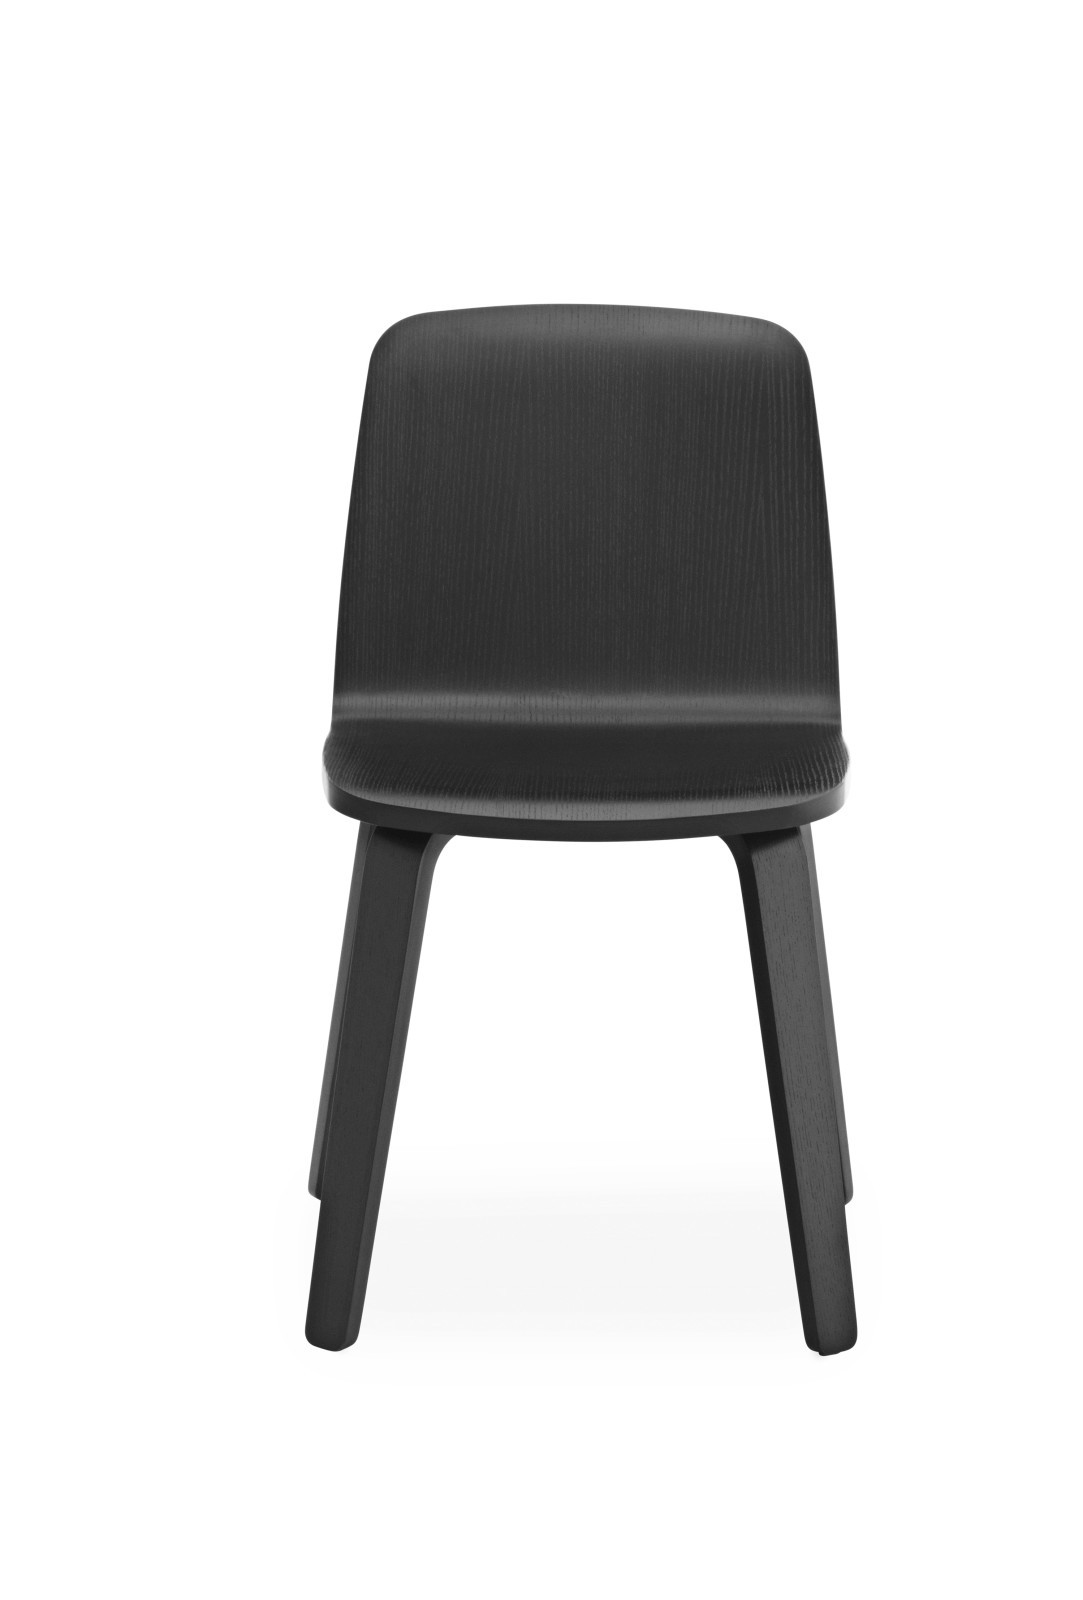 Just Chair - Wood Base Black/Black